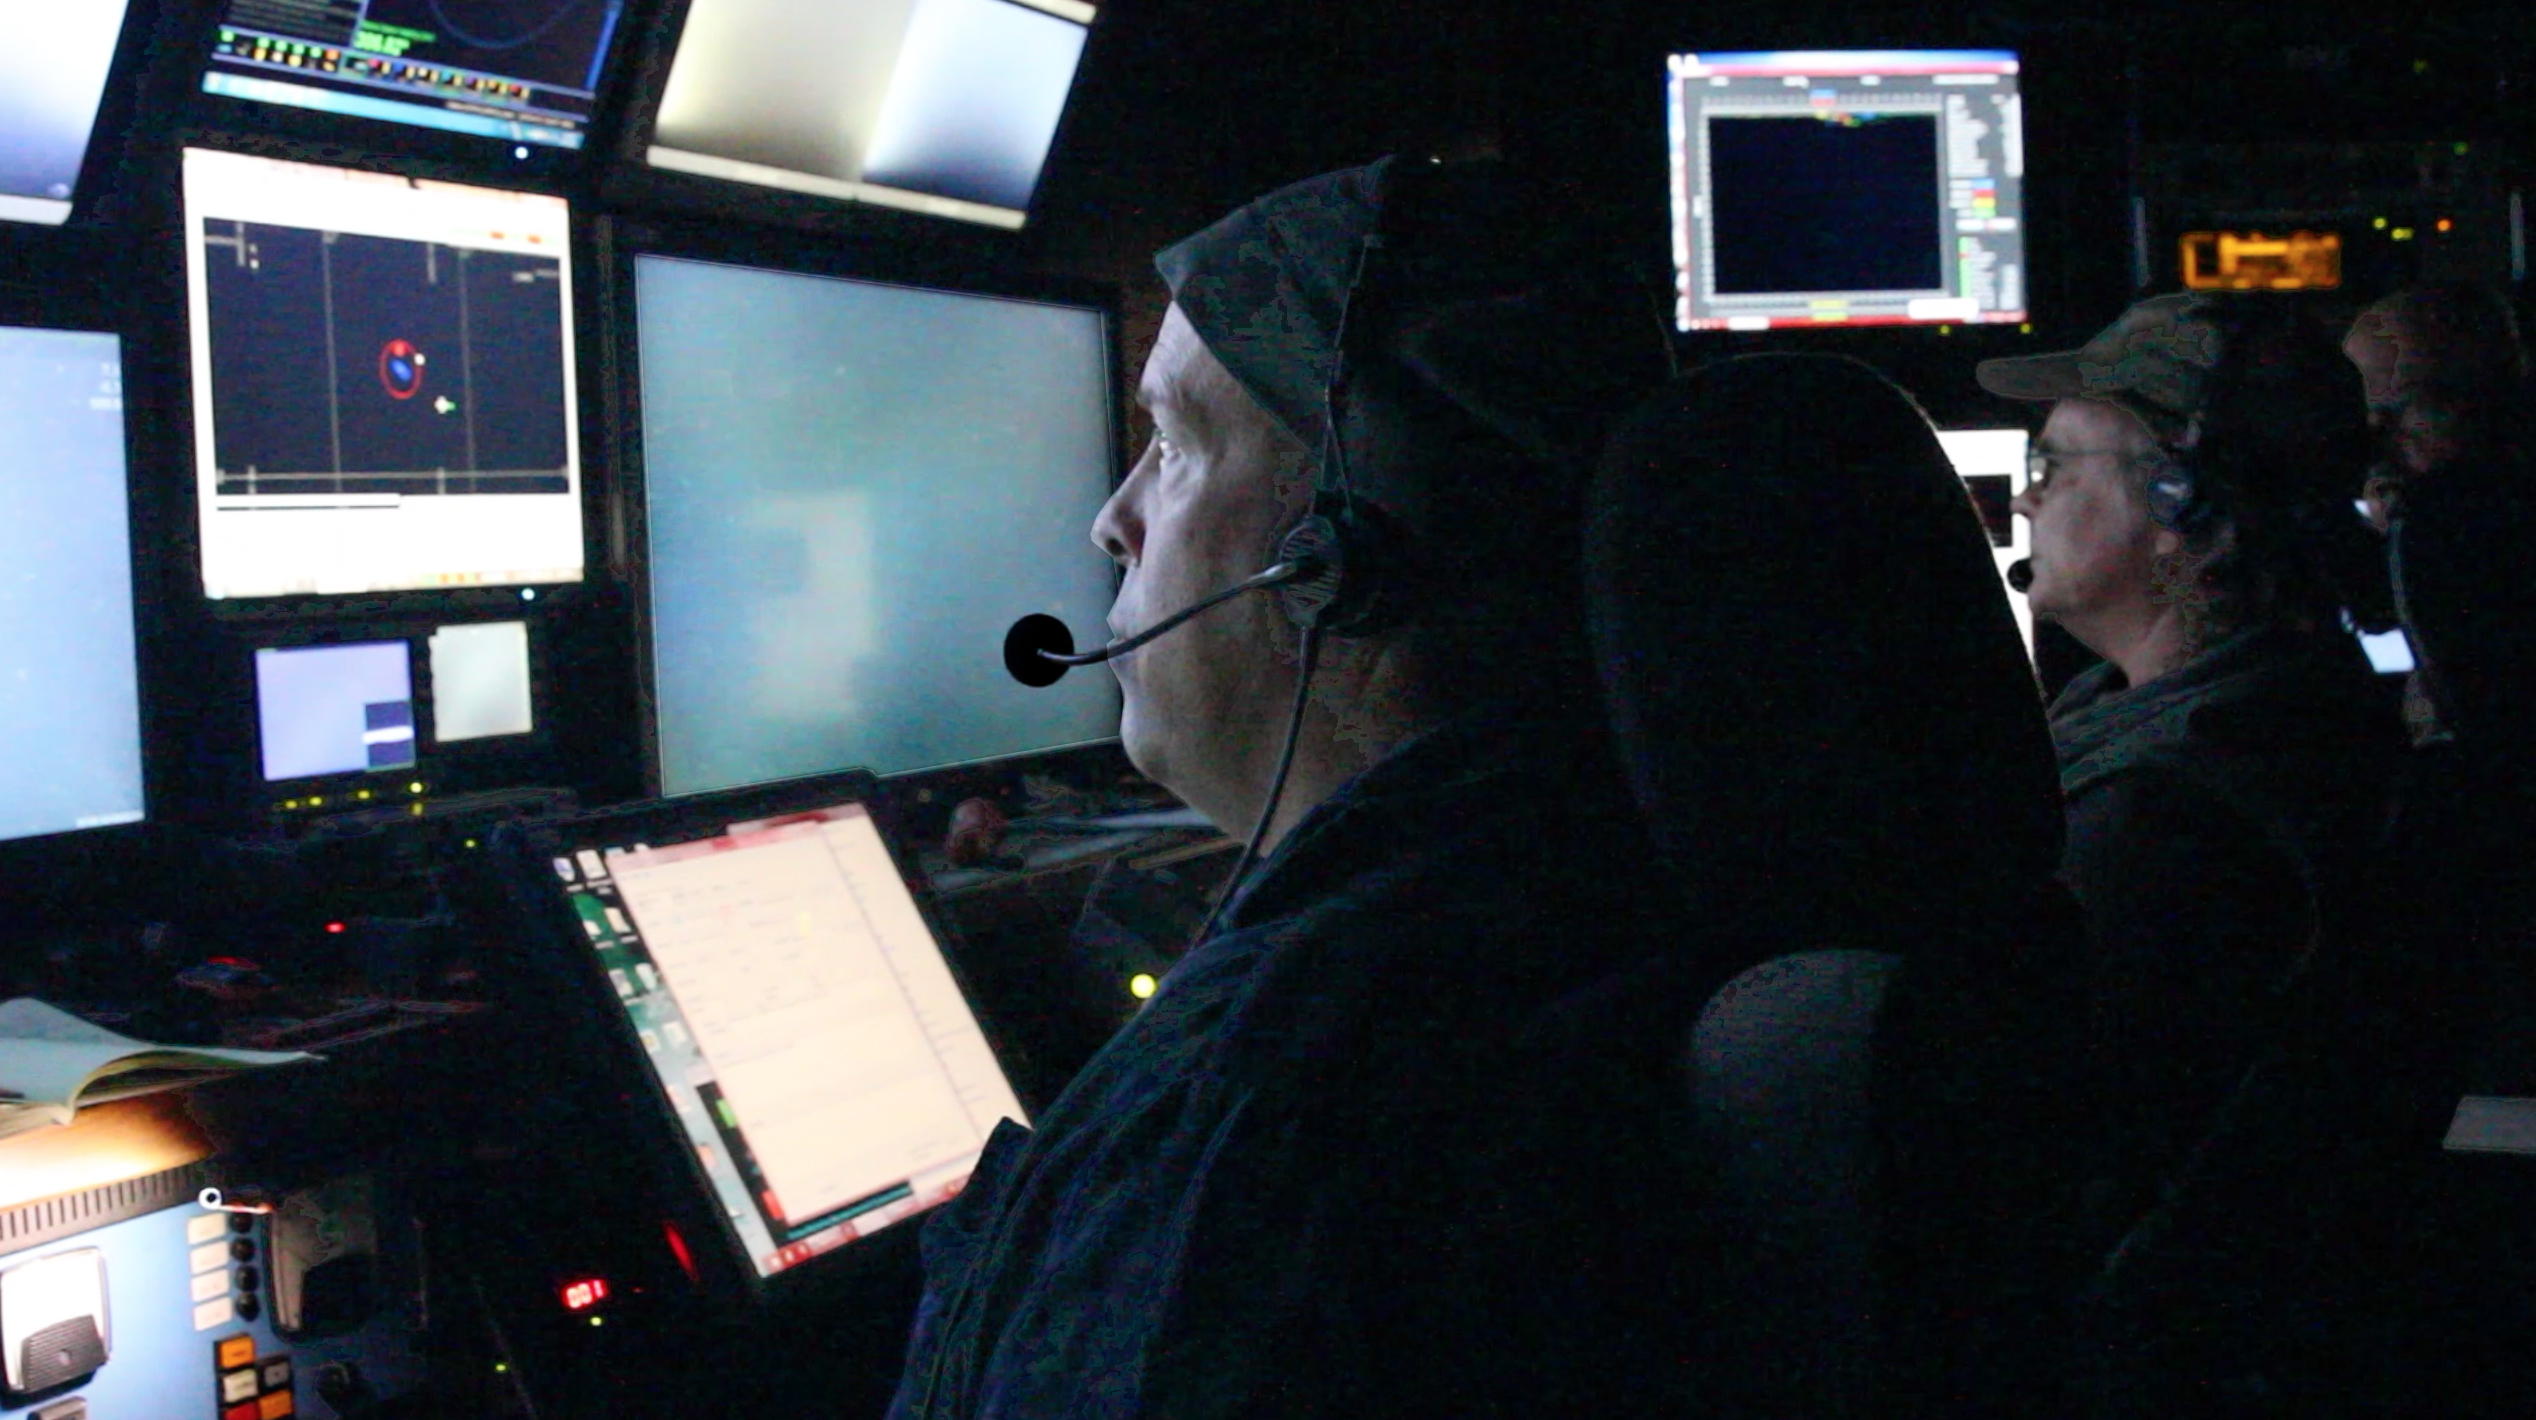 ROV Pilot DJ Osborne and Researchers Kim Reisenbichler and Rob Sherlock work together in the control room of the R/V <em>Rachel Carson</em> to conduct survey transects with the ROV.